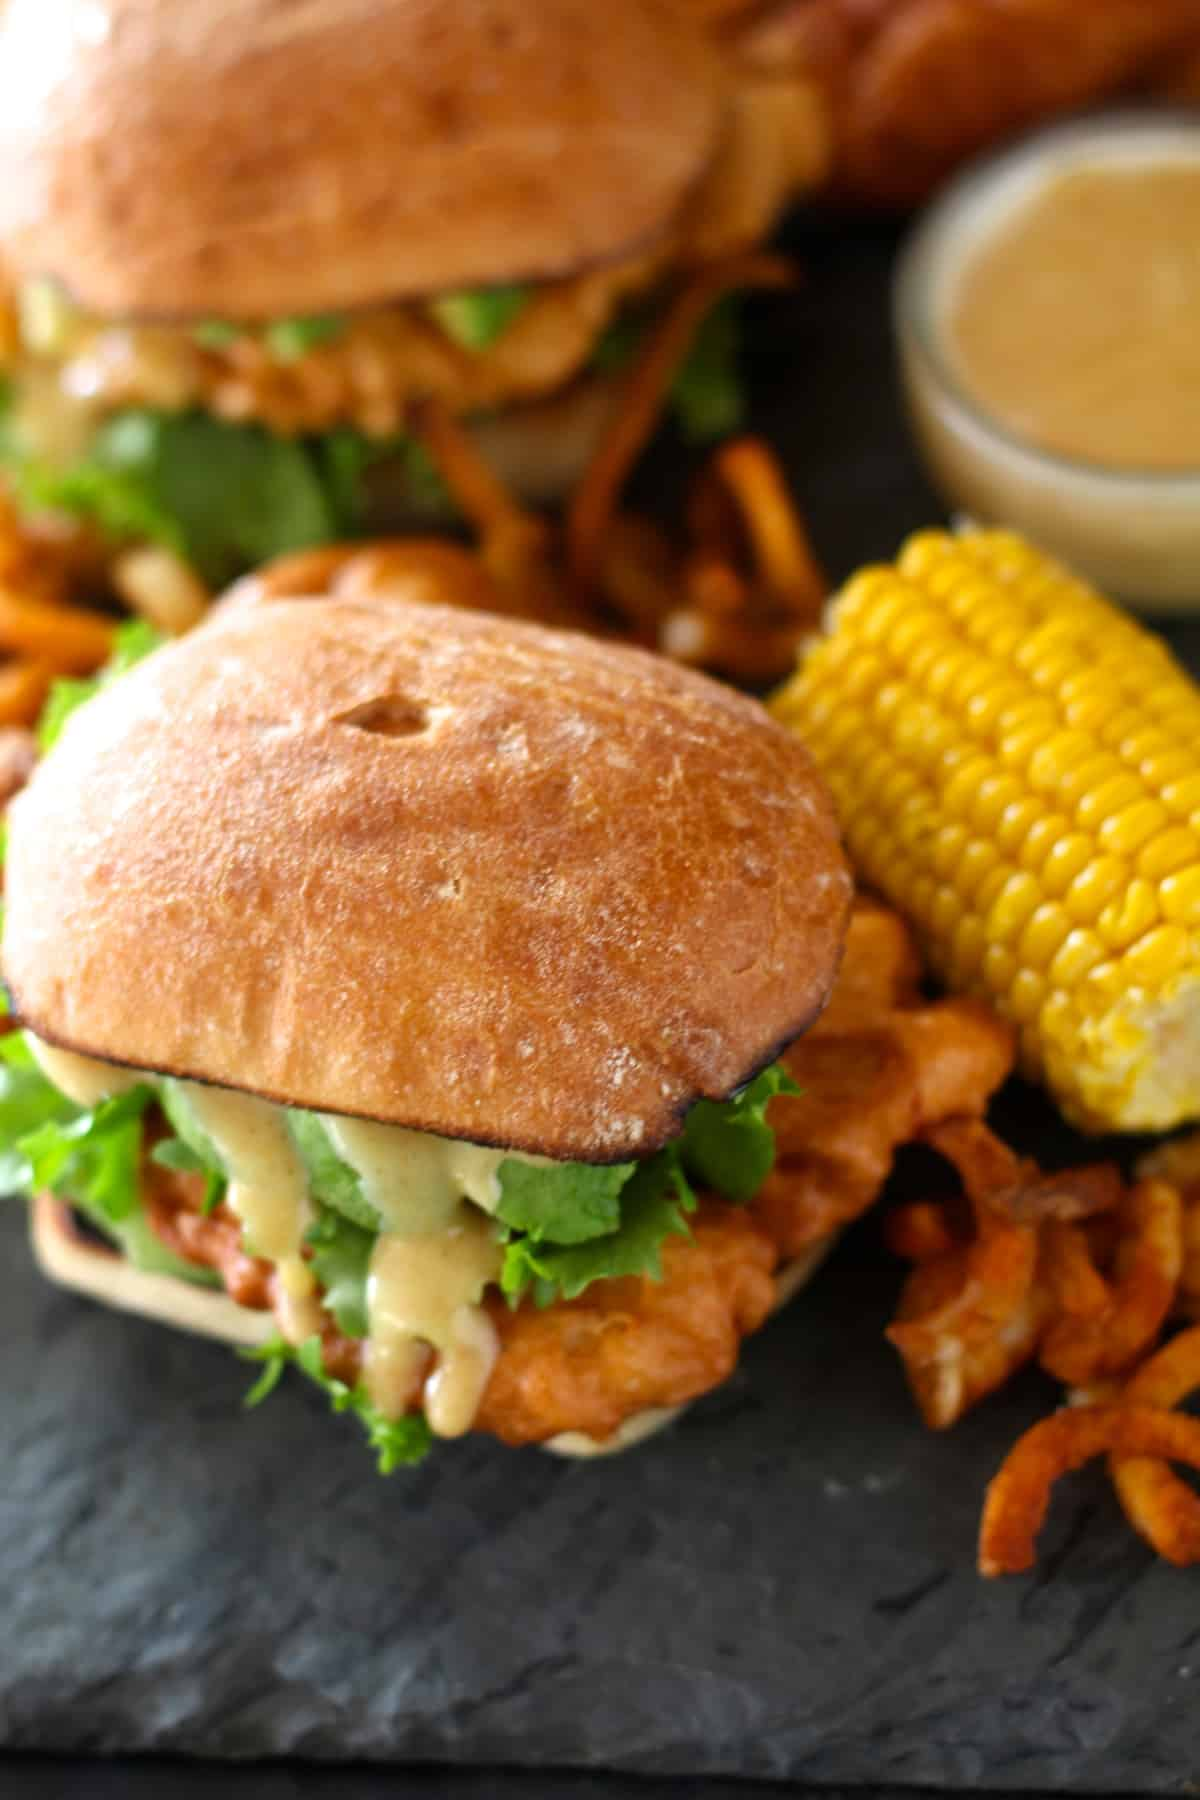 crispy battered chicken tenders in sandwich form with honey mustard dressing